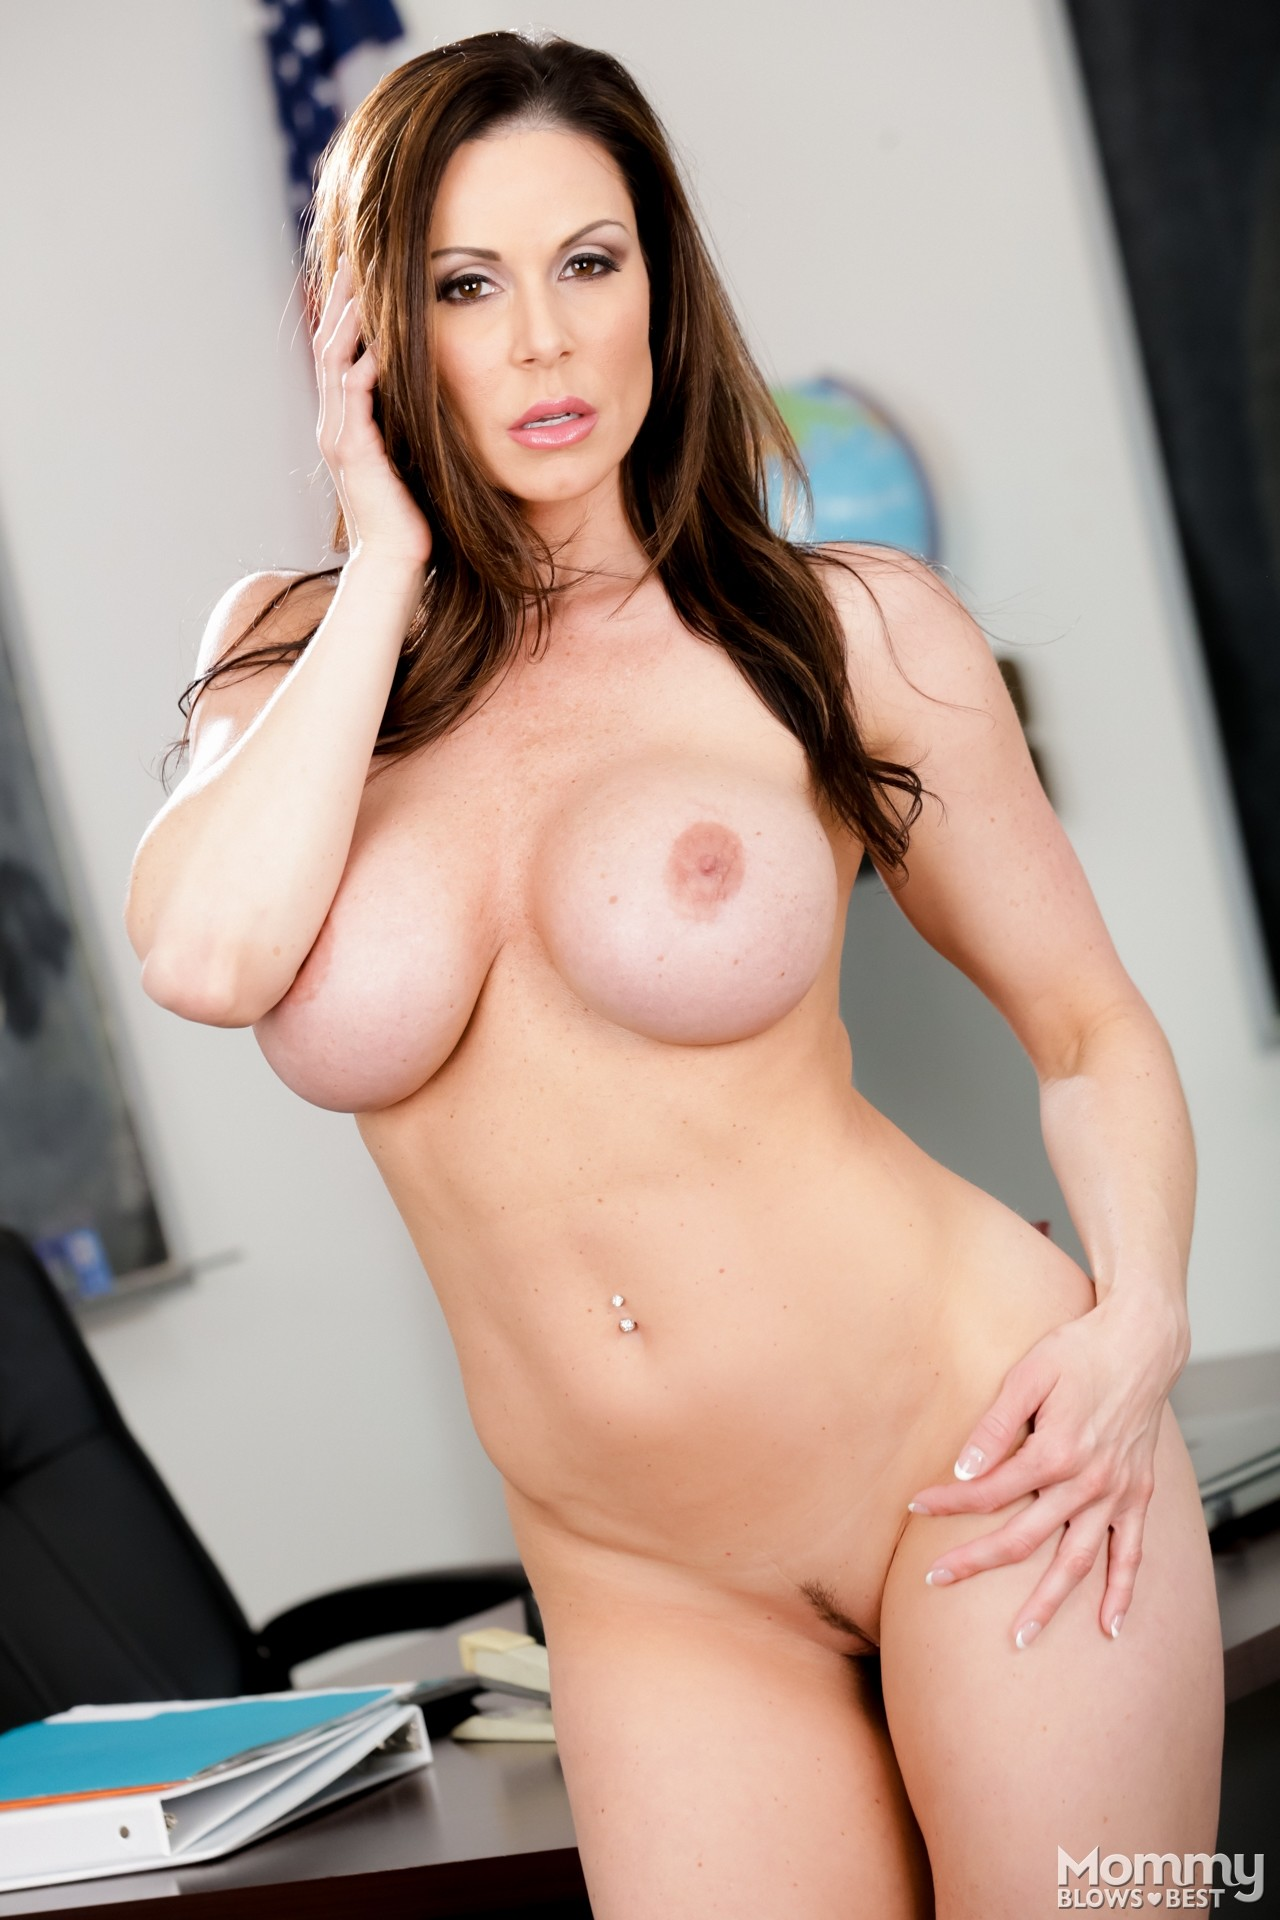 Kendra lust mommy